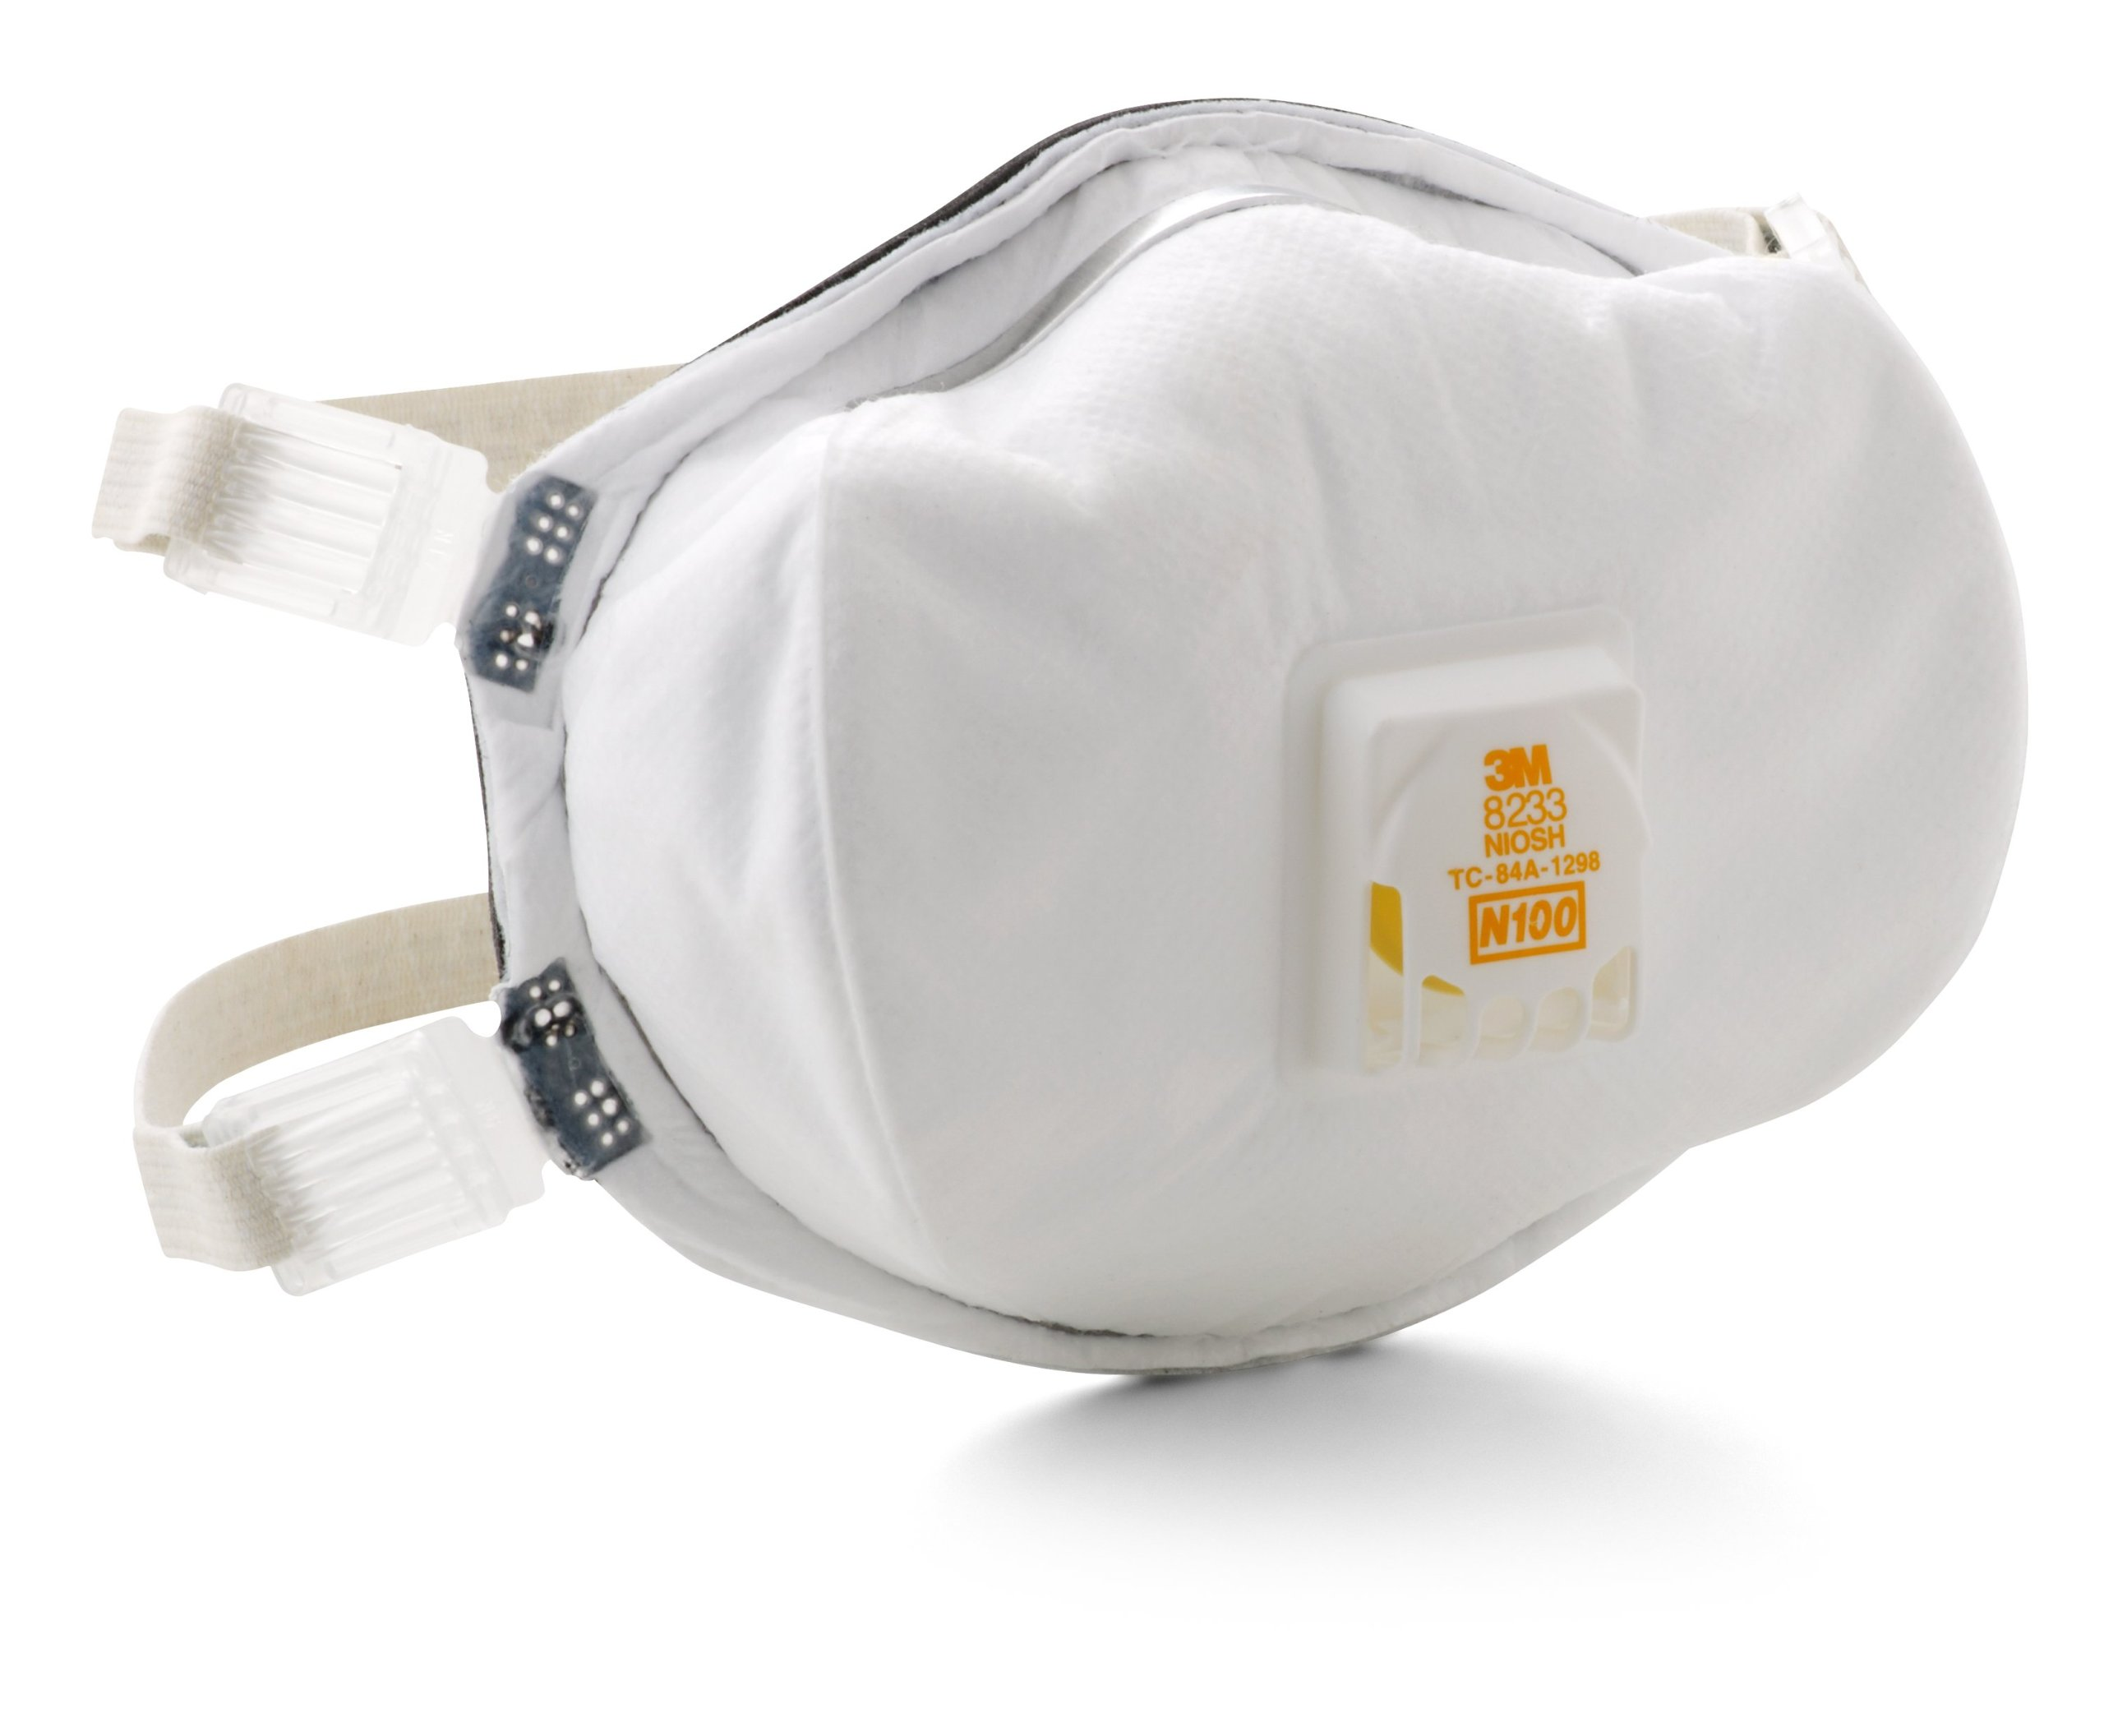 3M 8233PA1-A-PS Lead Paint Removal Valved Respirator by 3M (Image #4)